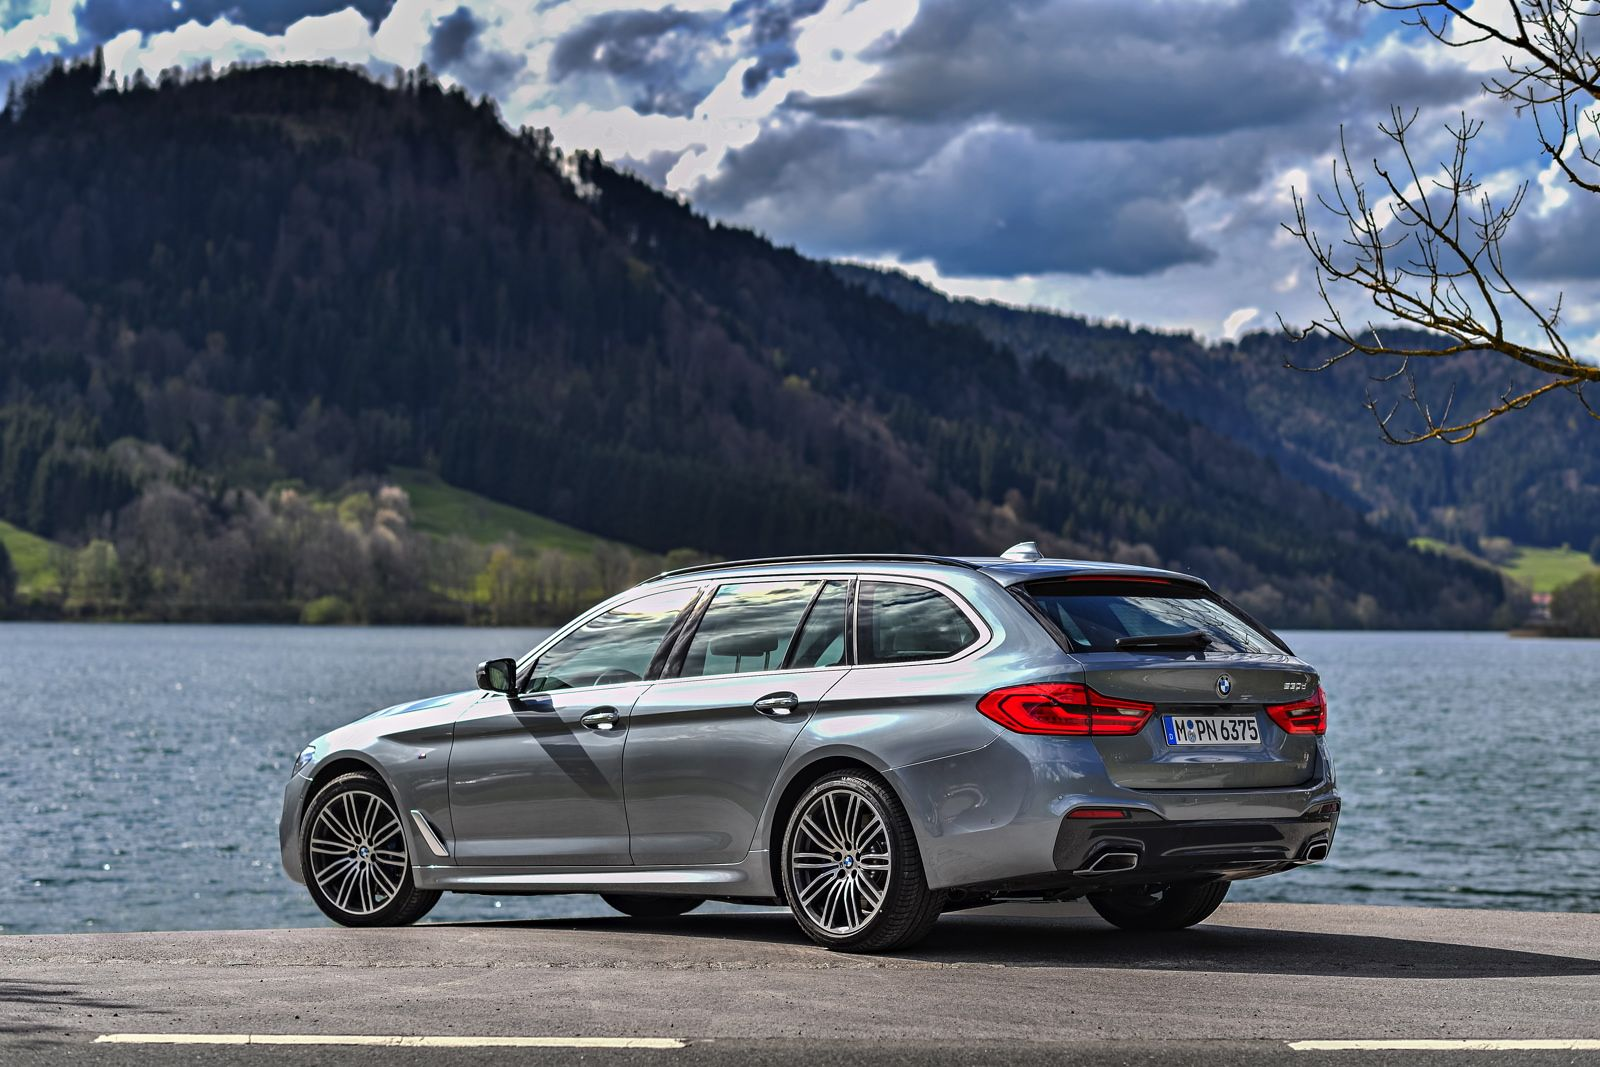 Bmw S New Executive Load Lugger Gets Improved Interior Space And Is - Top gear reviews the bmw 5 series touring http www bmwblog